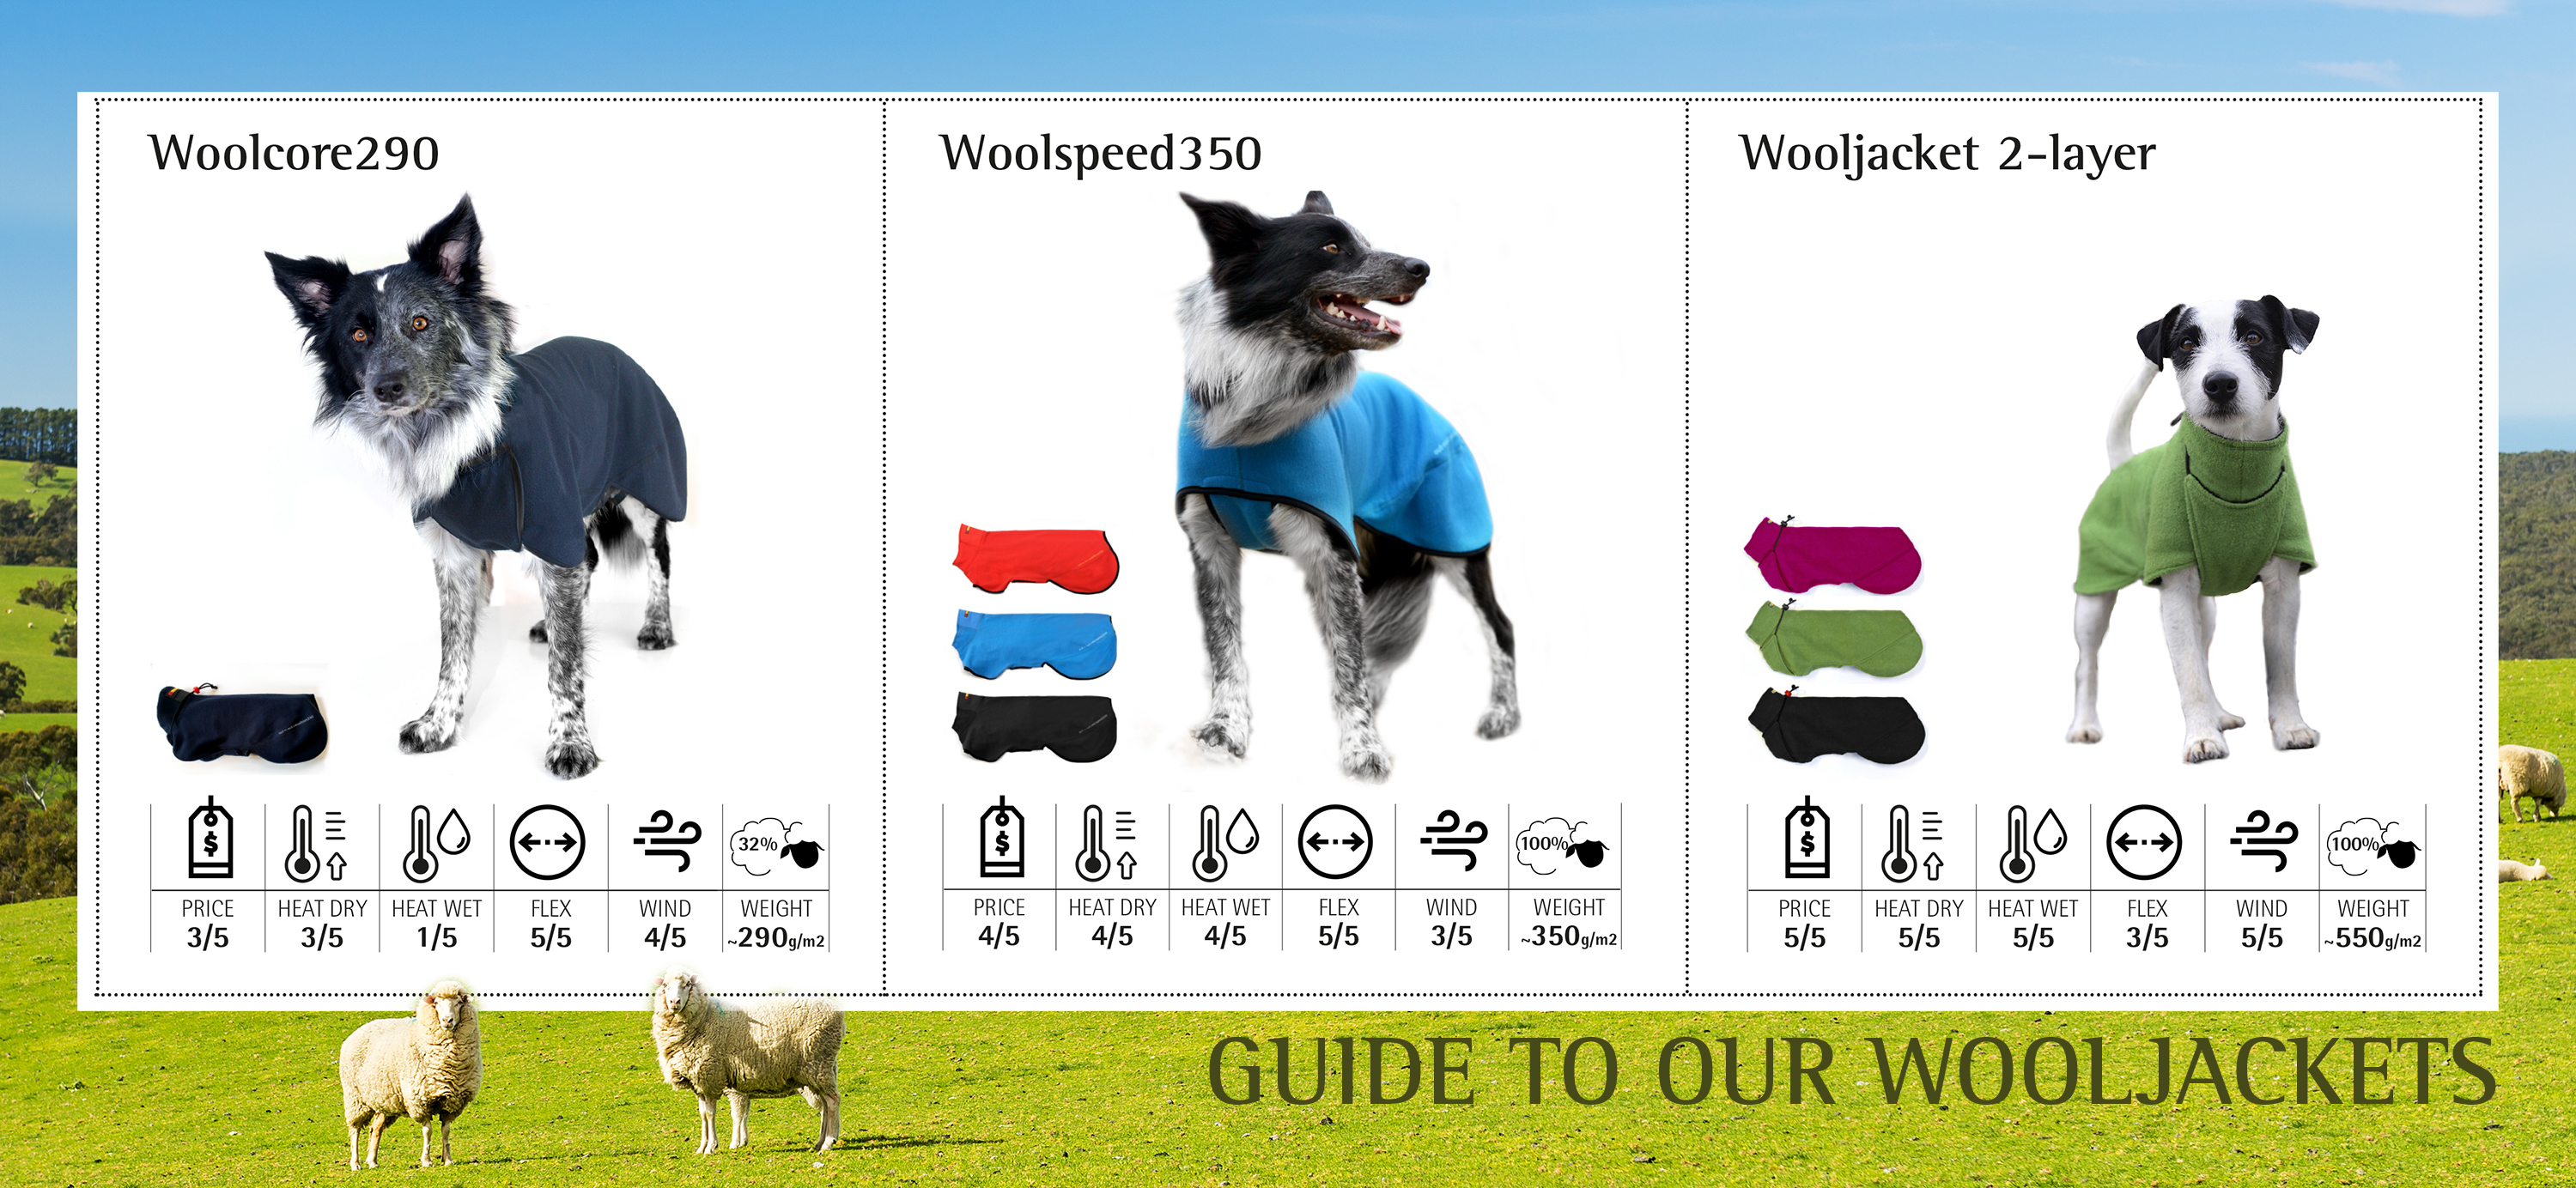 Guide to our wooljackets